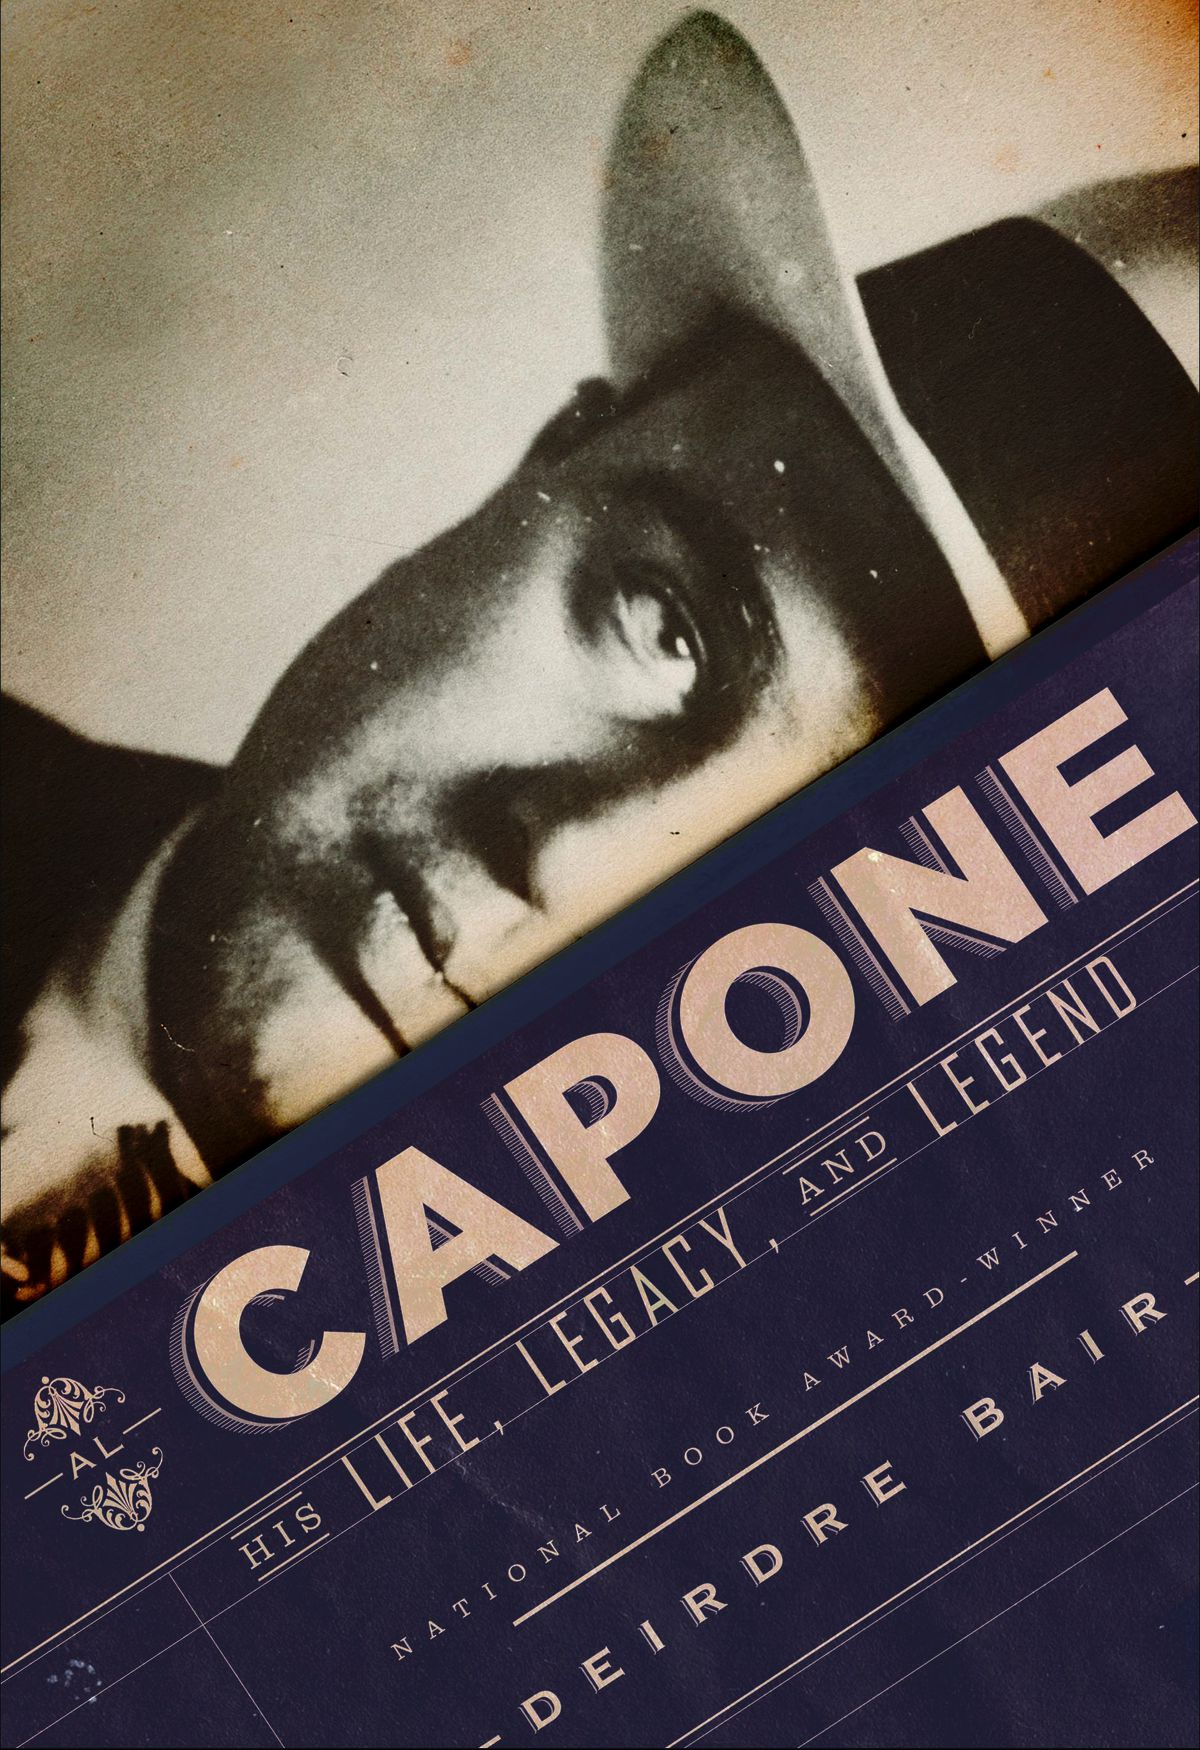 """""""Al Capone: His Life, Legacy, and Legend"""" by Deirdre Bair (Nan A. Talese/Doubleday, $30)."""